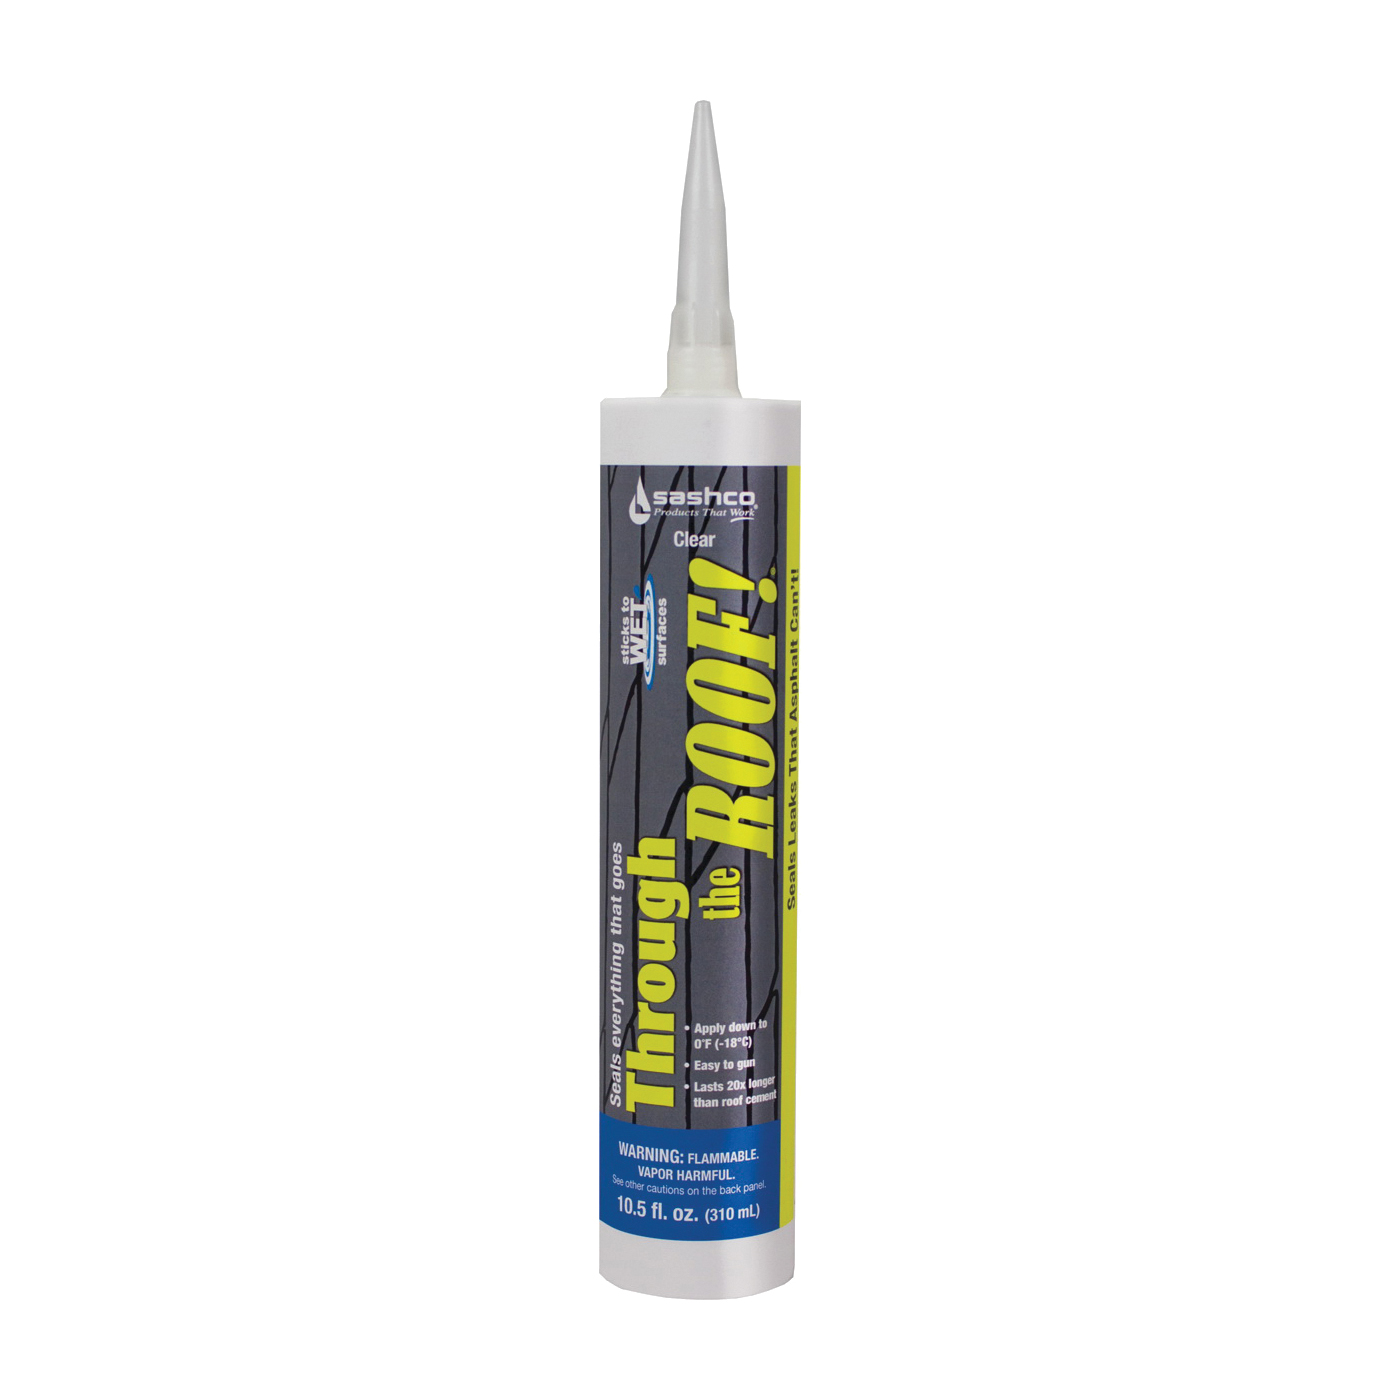 Picture of Through The Roof! 14010 Cement and Patching Sealant, Clear, Liquid, 10.5 oz Package, Cartridge